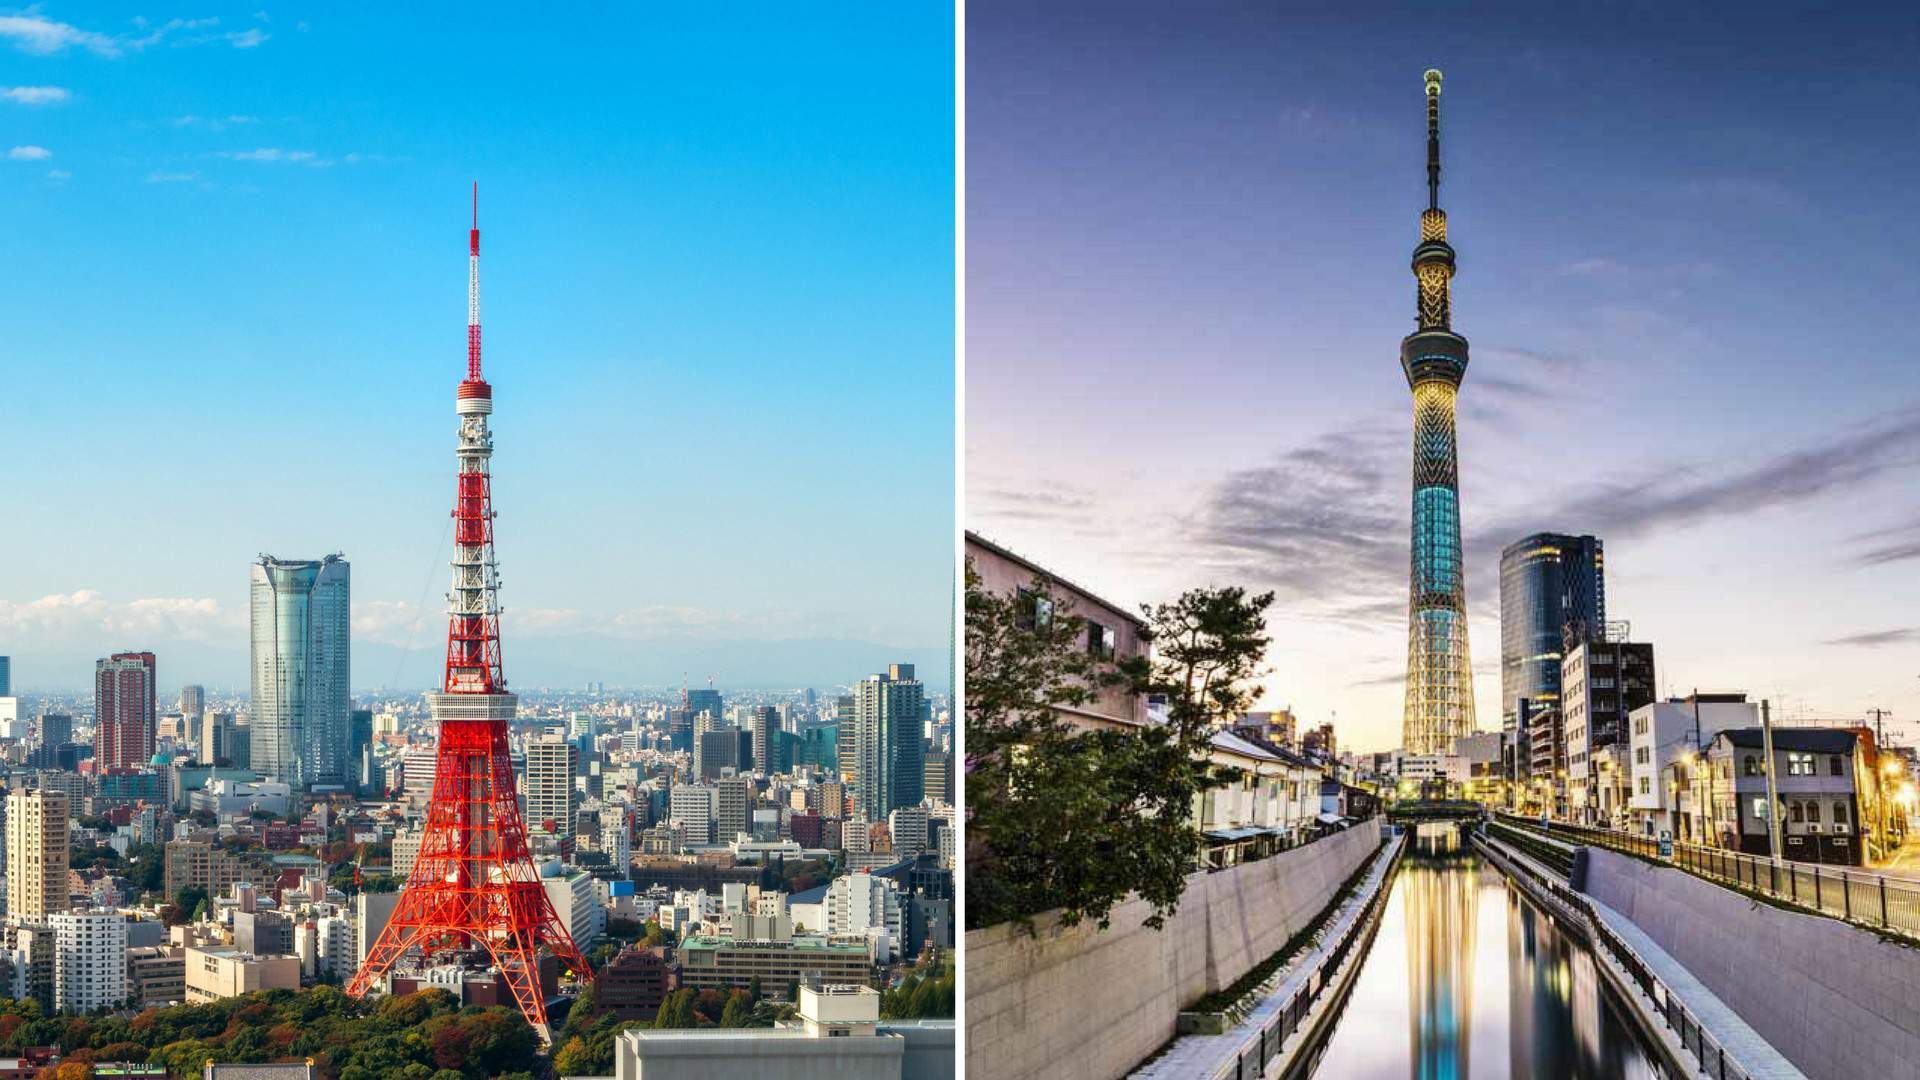 tokyo tower vs tokyo skytree g day japan